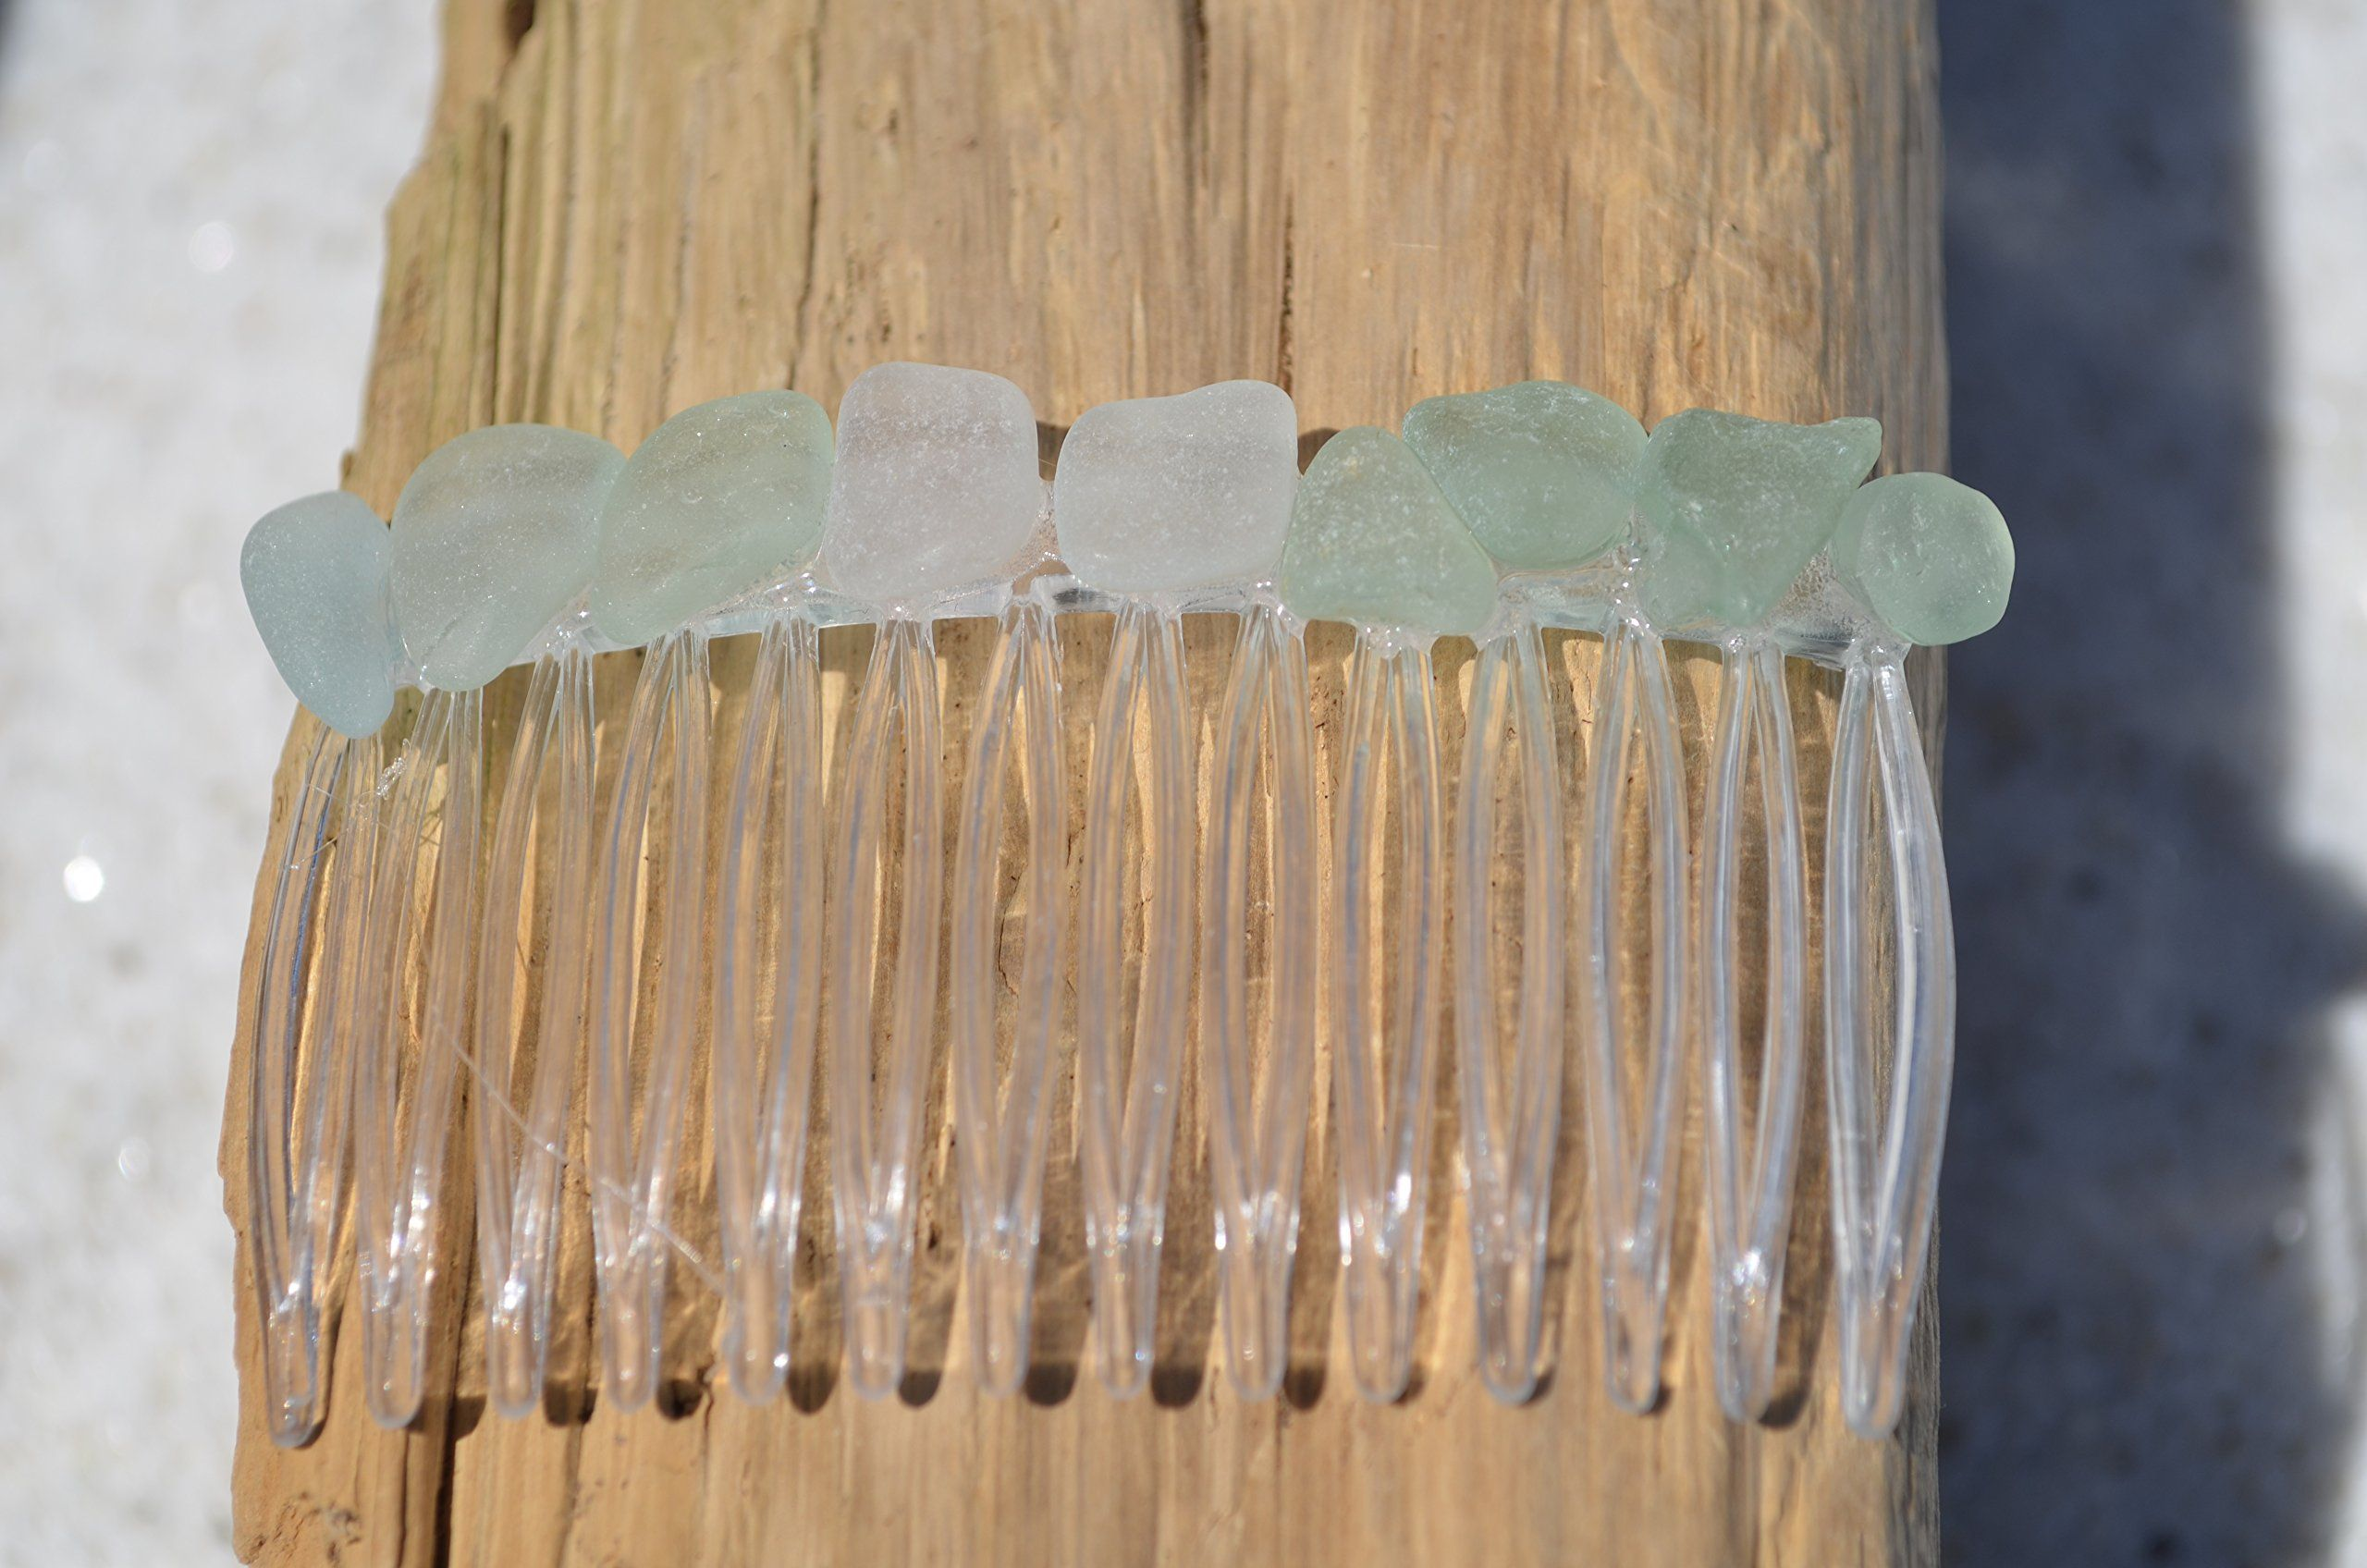 Sea Foam Blue an Aqua Sea Glass Hair Comb For Bride